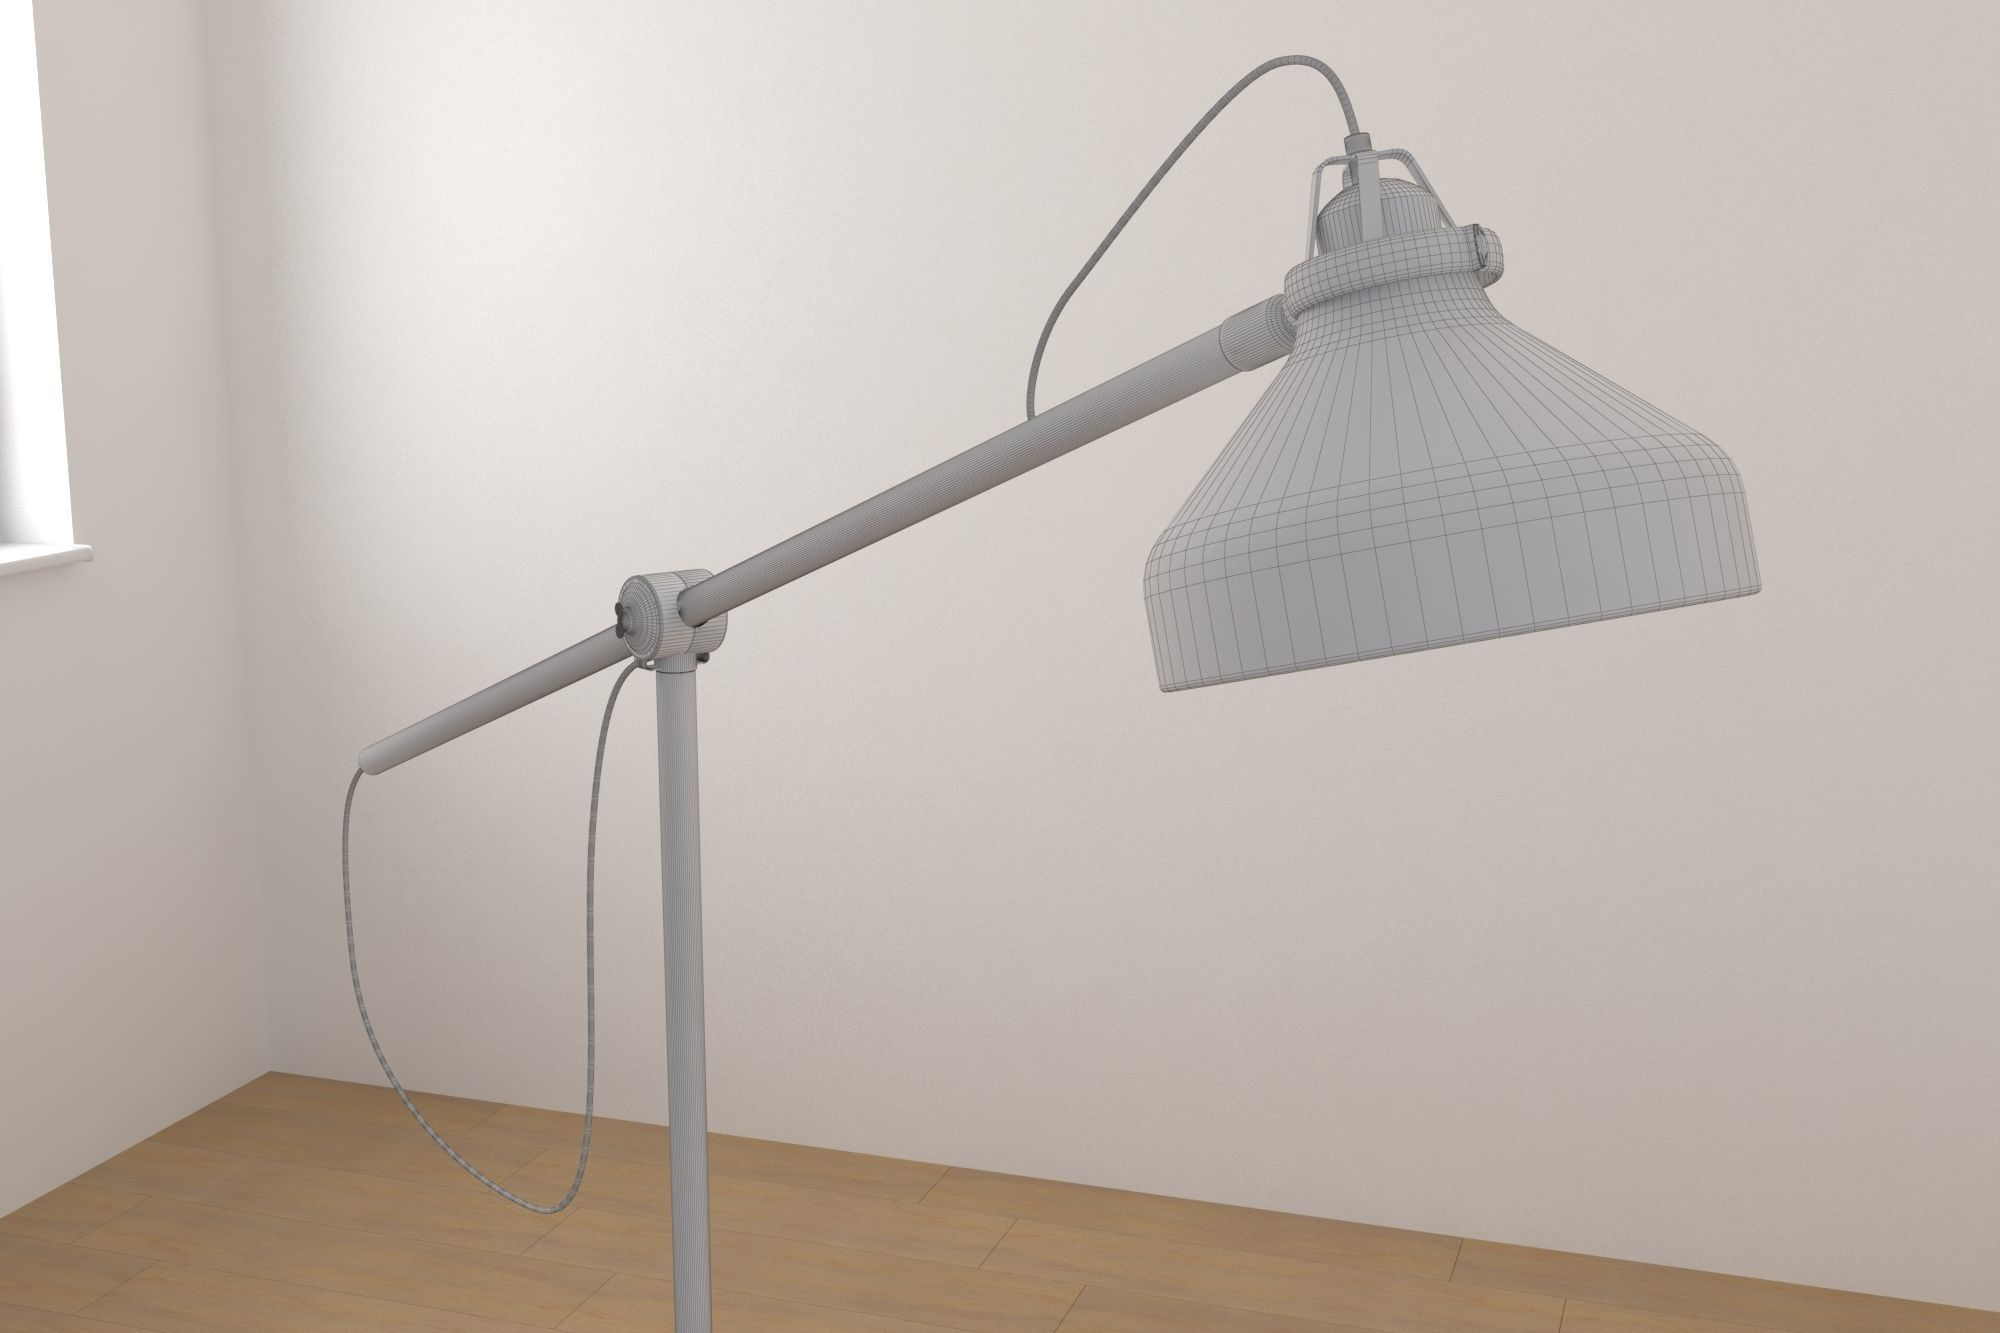 Ikea Ranarp Lamp : Wiring ikea light fixture uk simple ikea ranarp work lamp provides